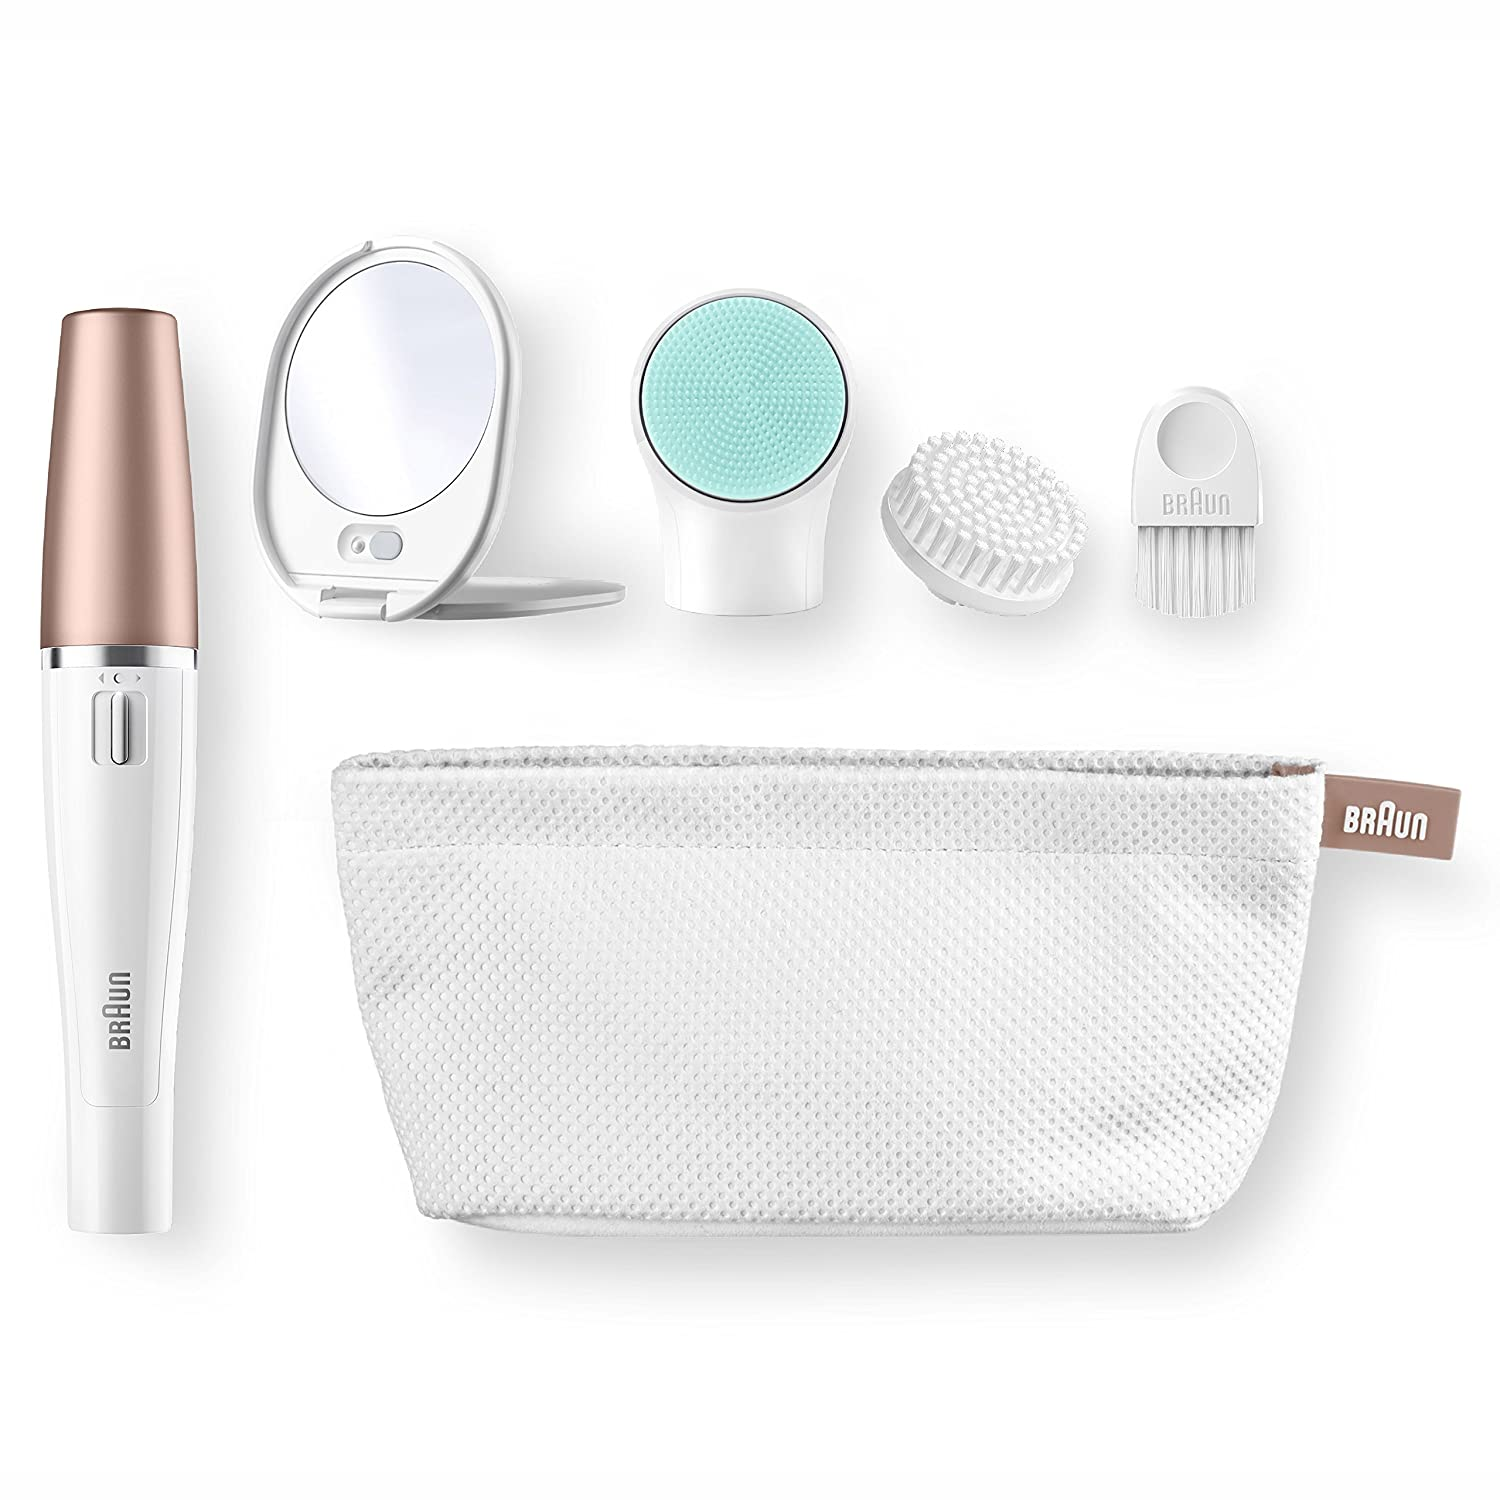 Braun Face 851V (Japanese Import) Women's Miniature Epilator, Electric Hair Removal, with 4 Facial Cleansing Brushes and Beauty Pouch